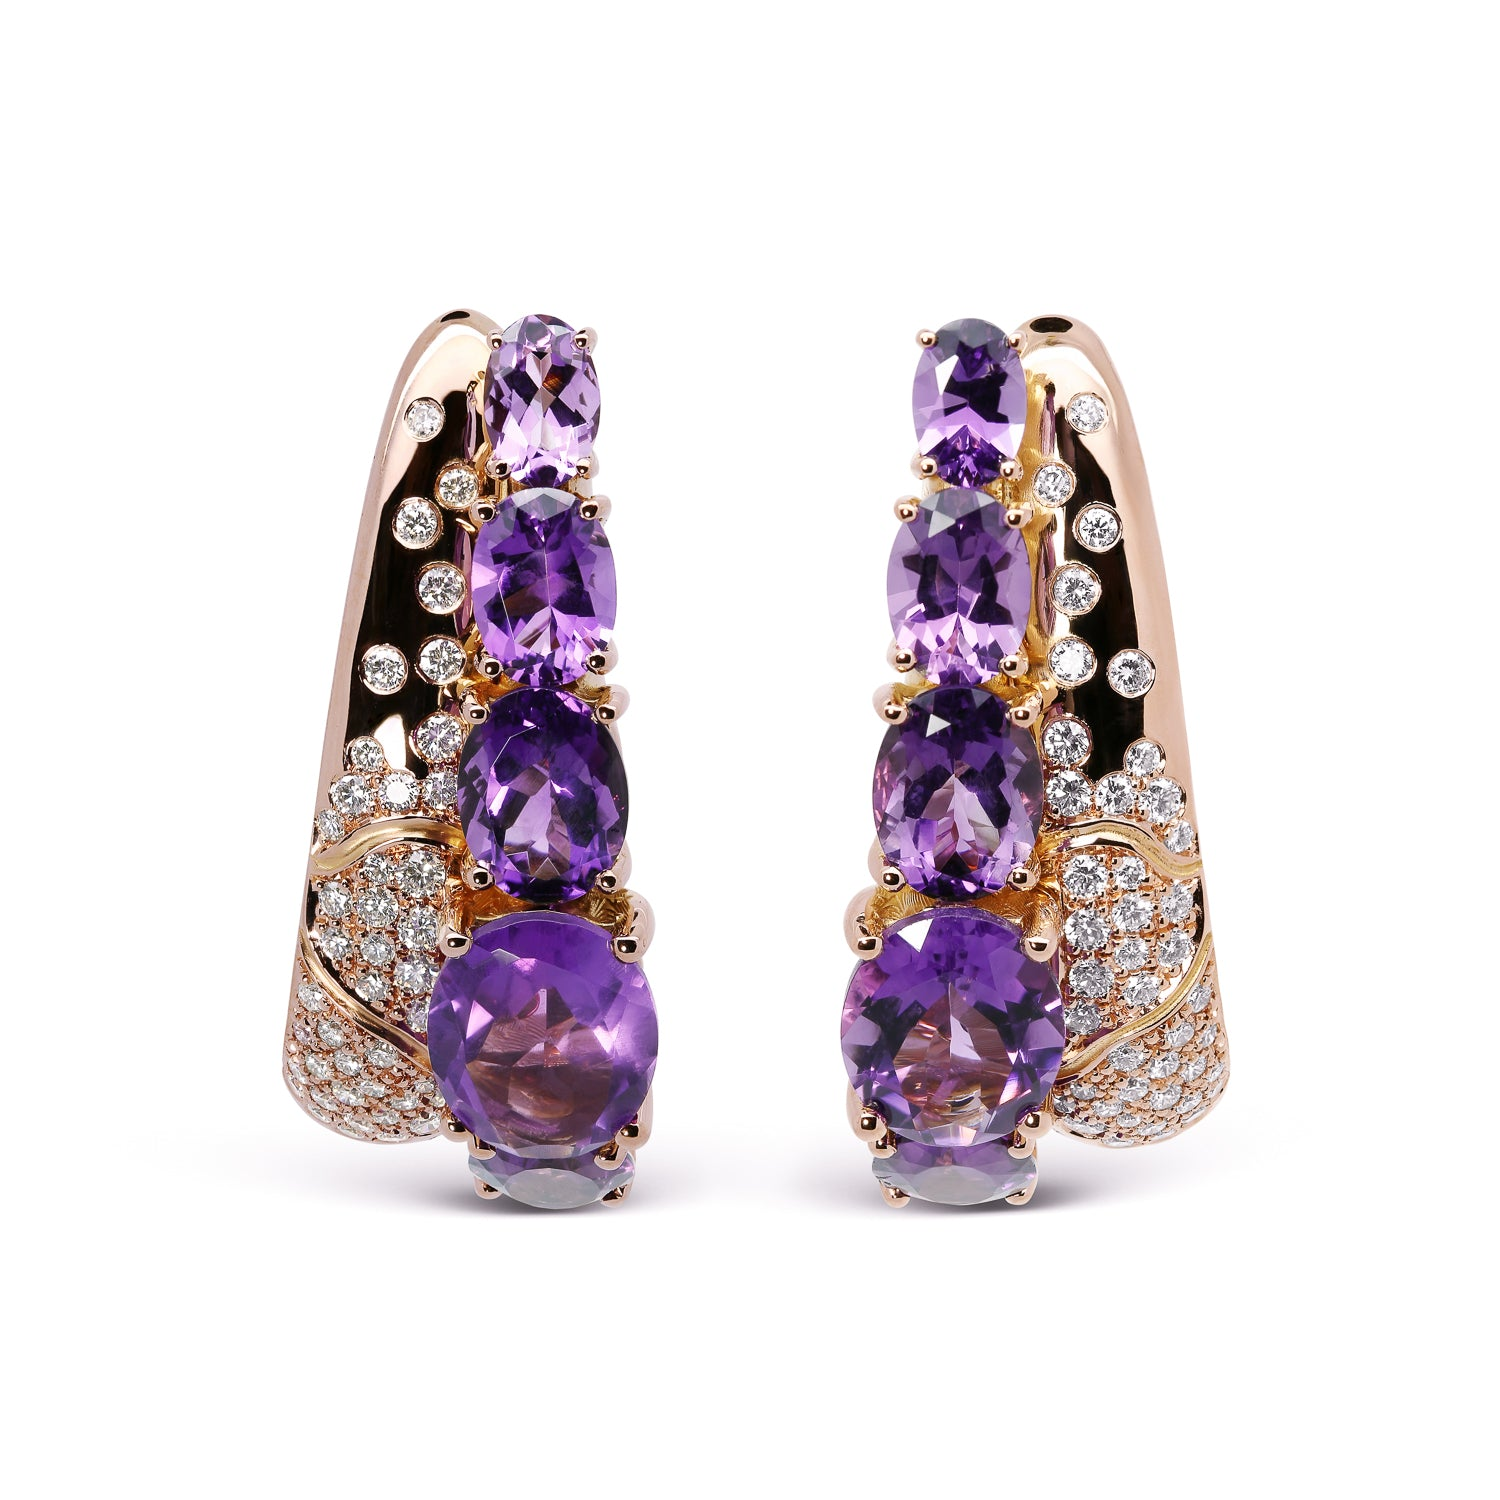 Bespoke Amethyst and Diamond Earrings